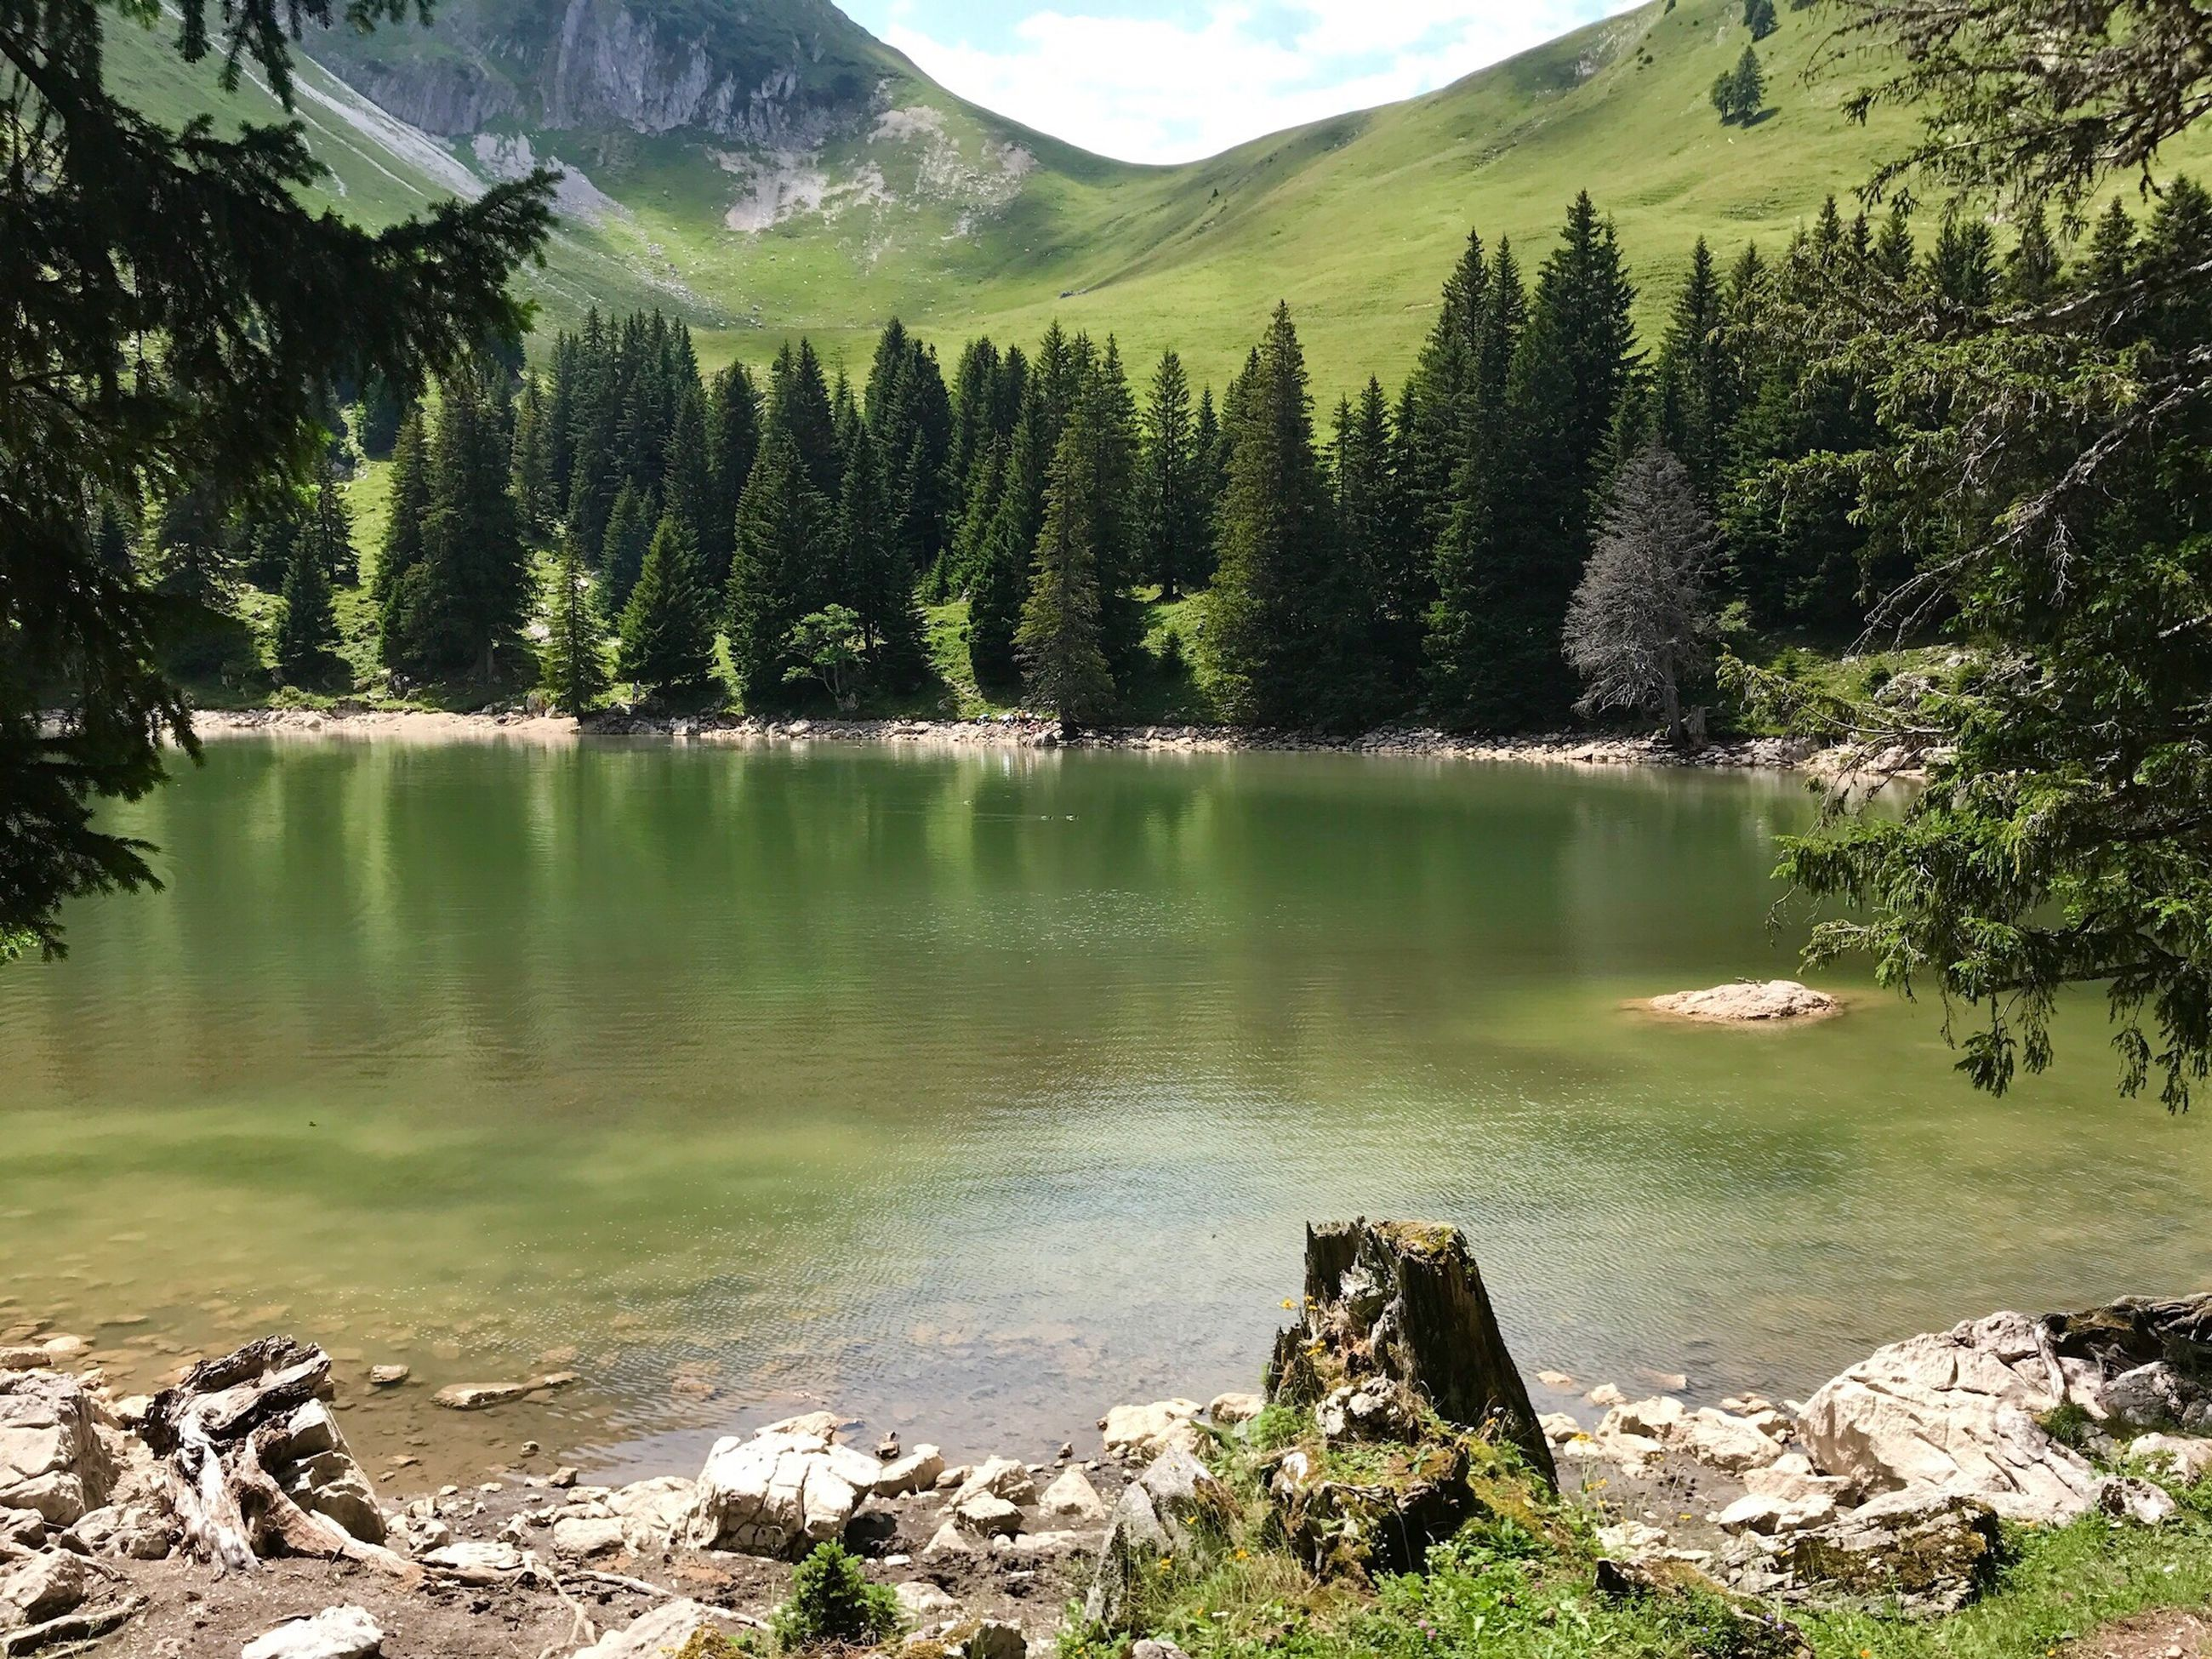 tree, nature, mountain, reflection, beauty in nature, lake, water, forest, tranquility, no people, scenics, outdoors, scenery, day, sky